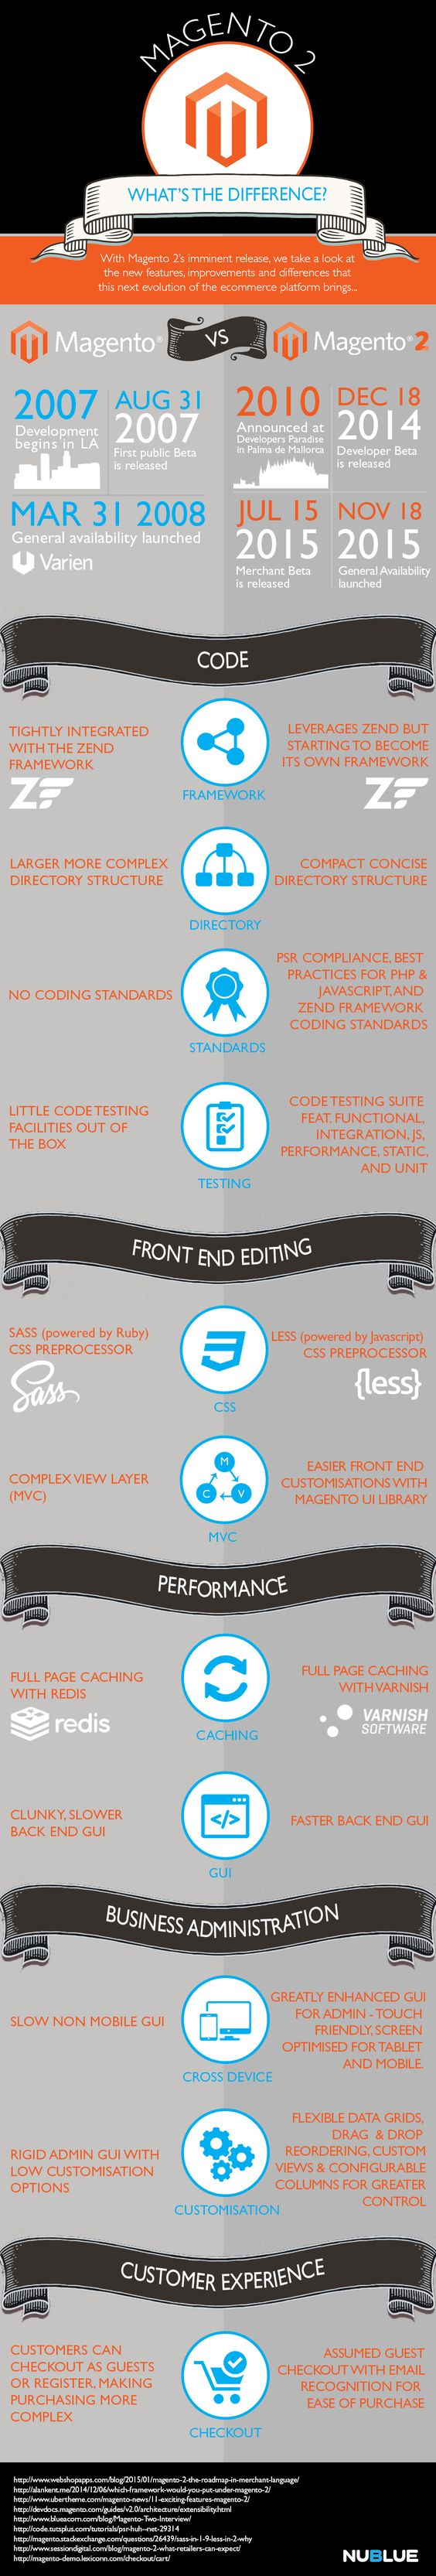 #Magento2 is here. But what's the difference between #Magento? #infographic via https://www.nublue.co.uk/blog/wp-content/uploads/2015/11/Magento-comparison-infographic1.jpg